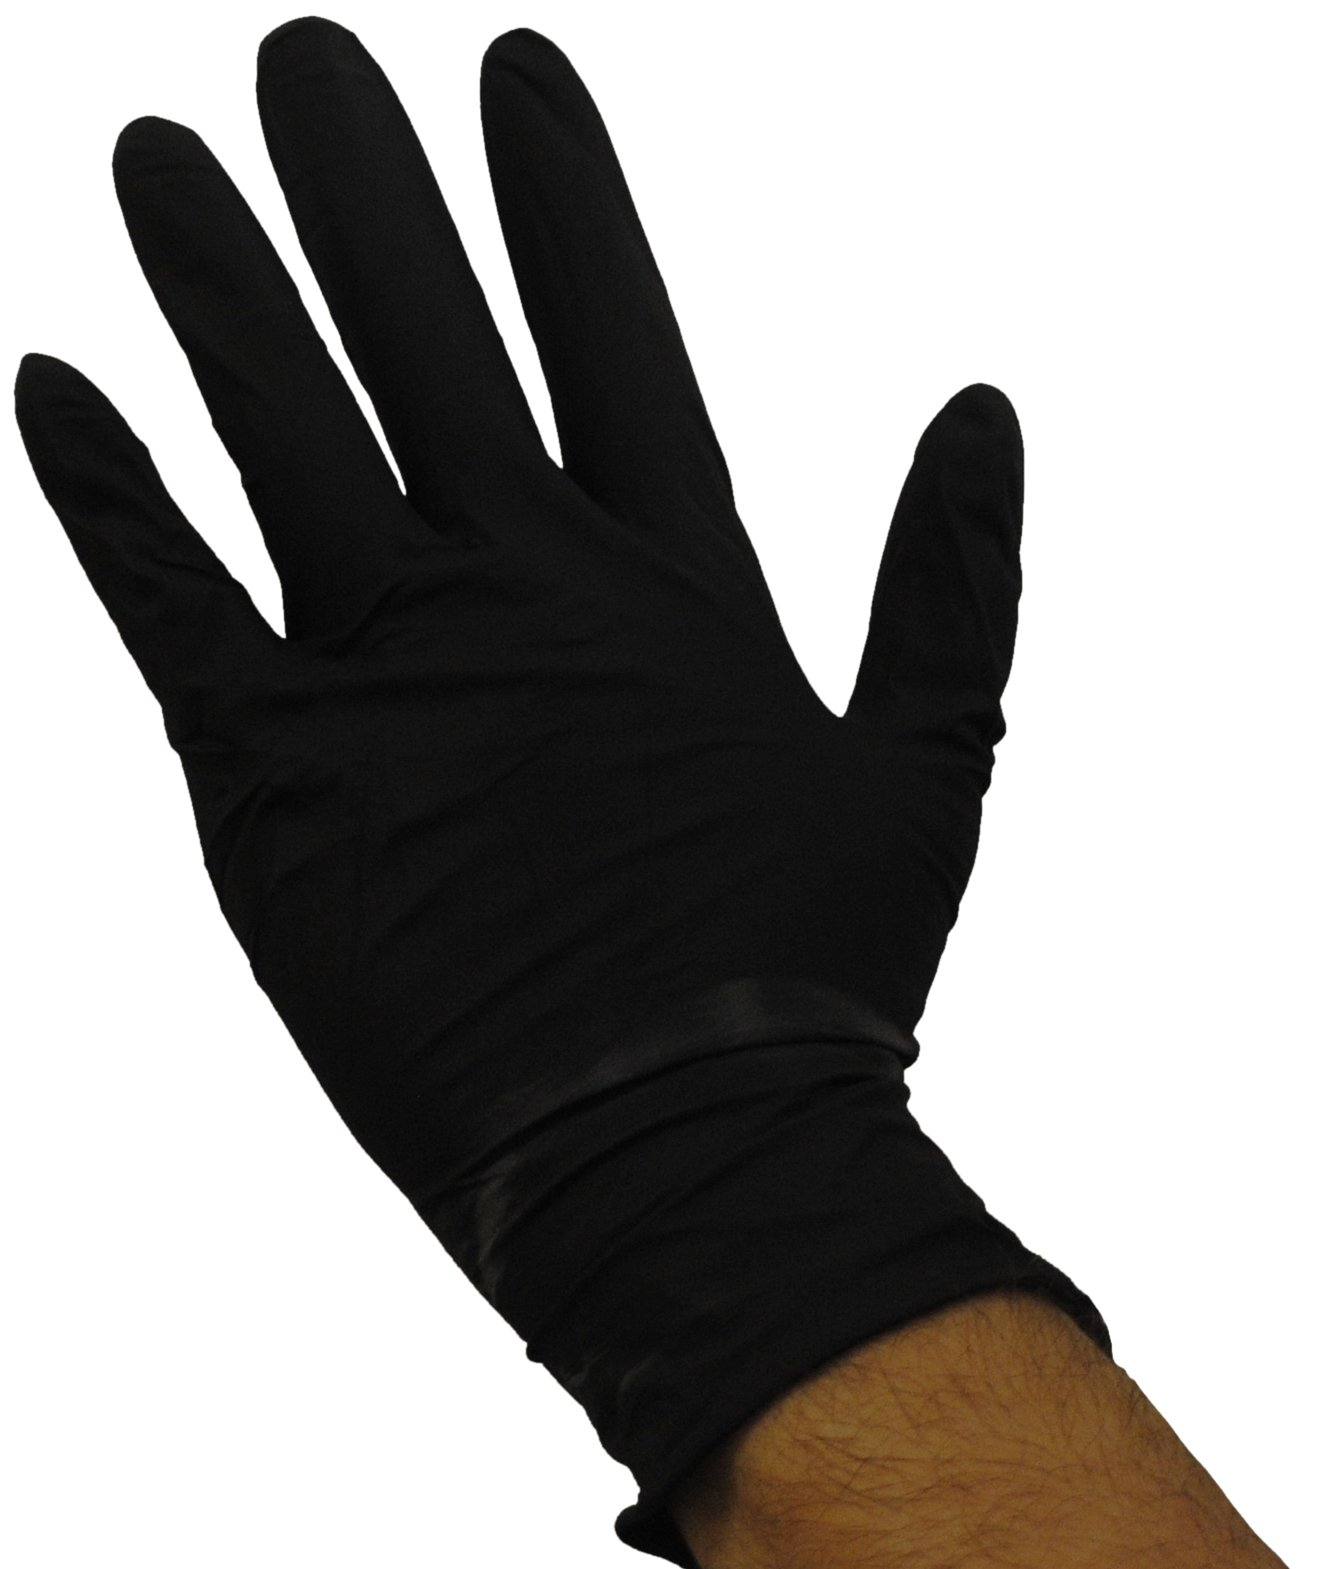 Emerald 6X Black Nitrile Medical Grade Gloves Case X-Large by Emerald